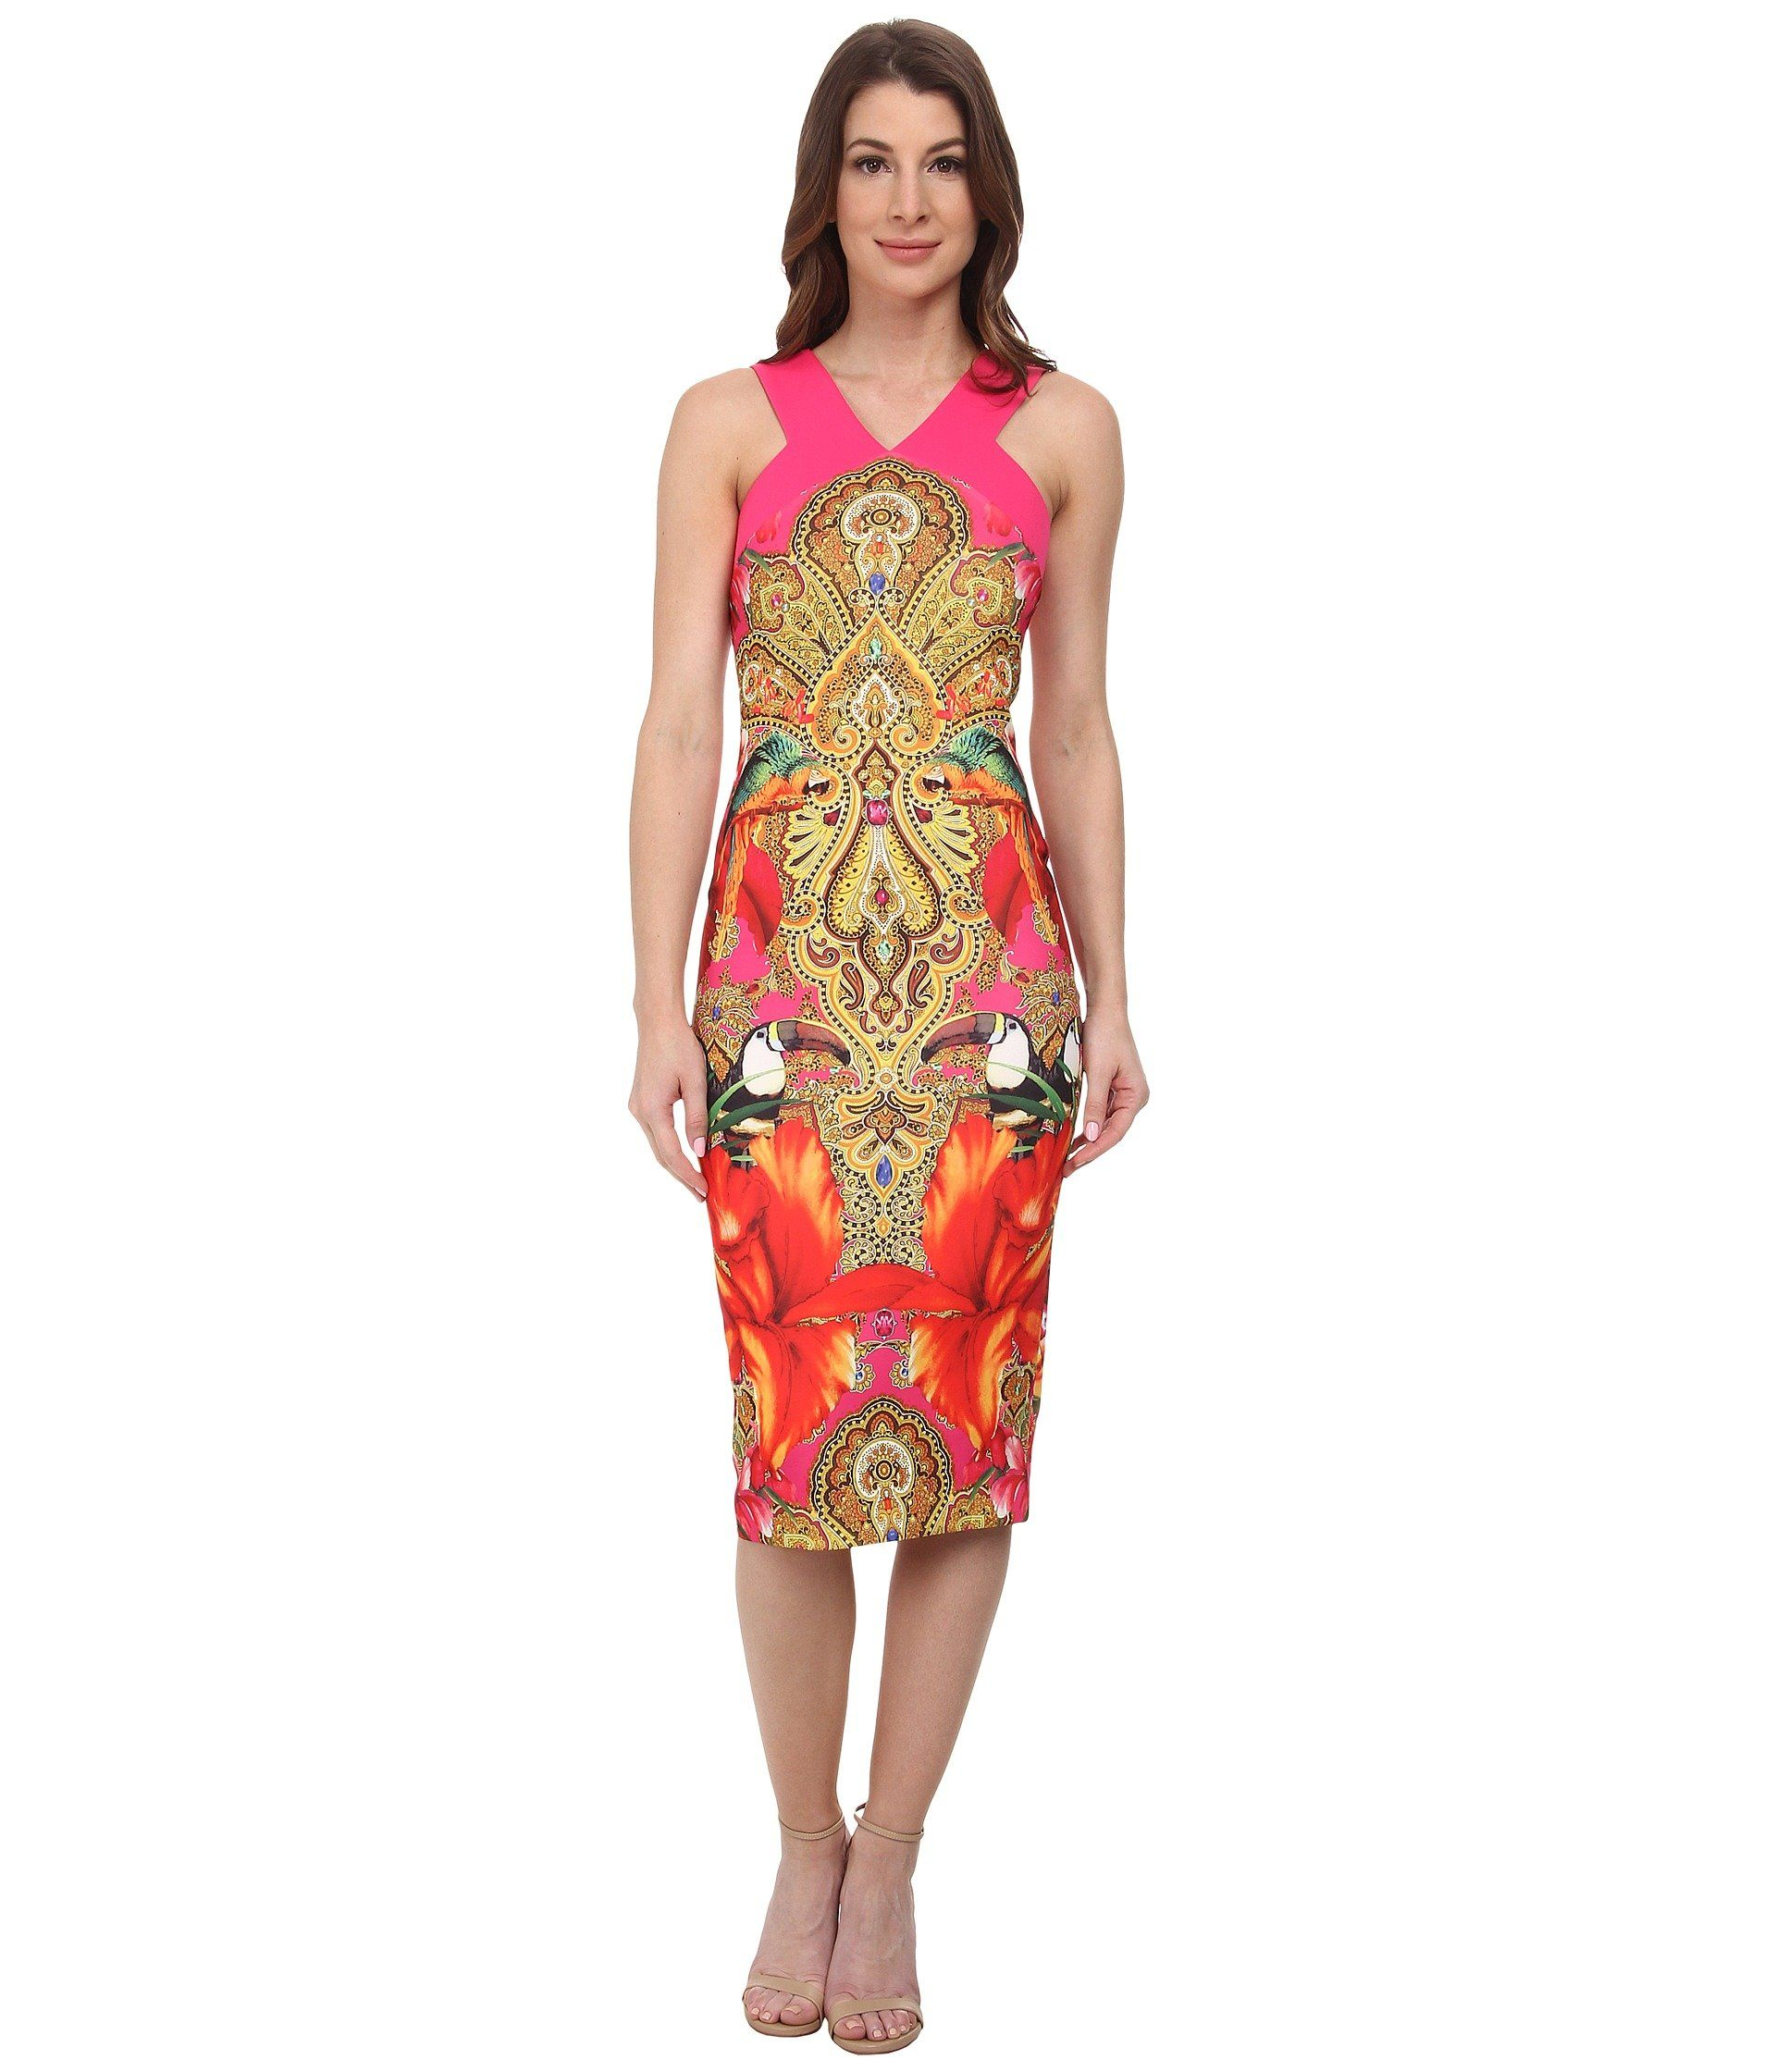 086802d4a2046a4f86d847d5dc3731de - Ted Baker Layli Gem Gardens Dress